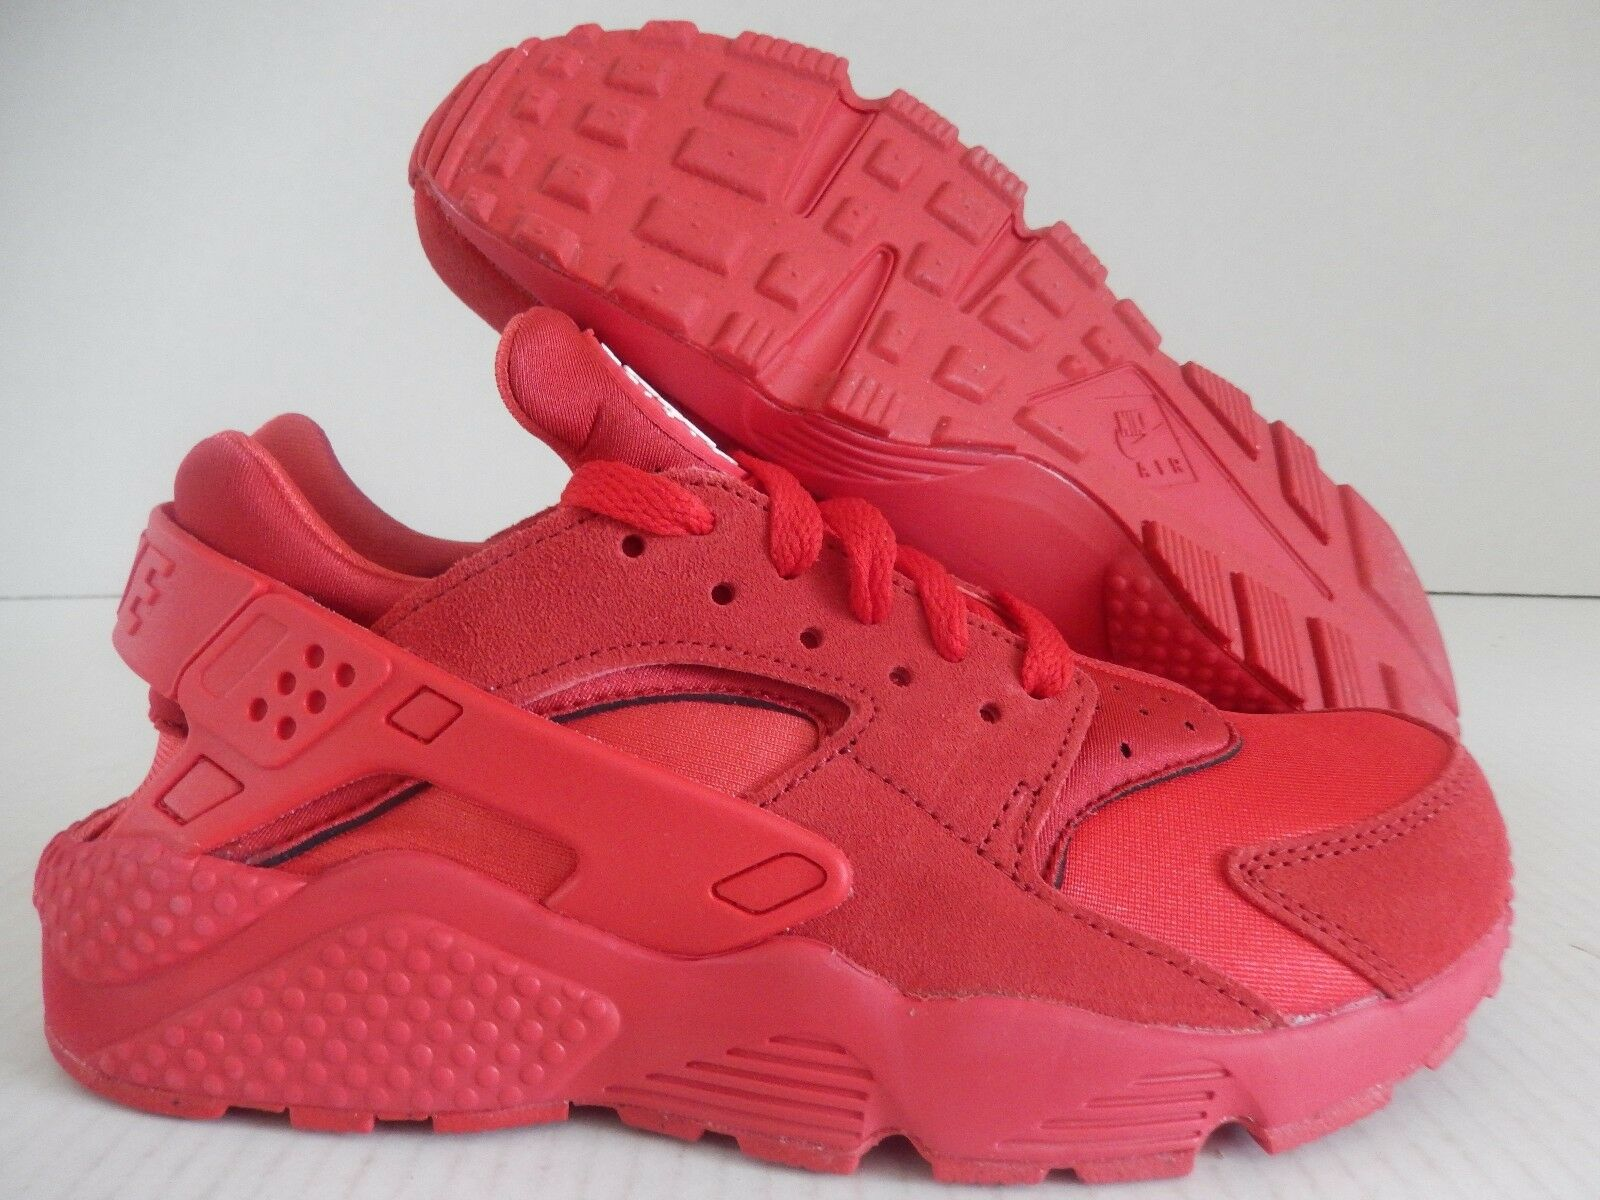 WMNS NIKE AIR HUARACHE ID RED-RED Price reduction Cheap women's shoes women's shoes